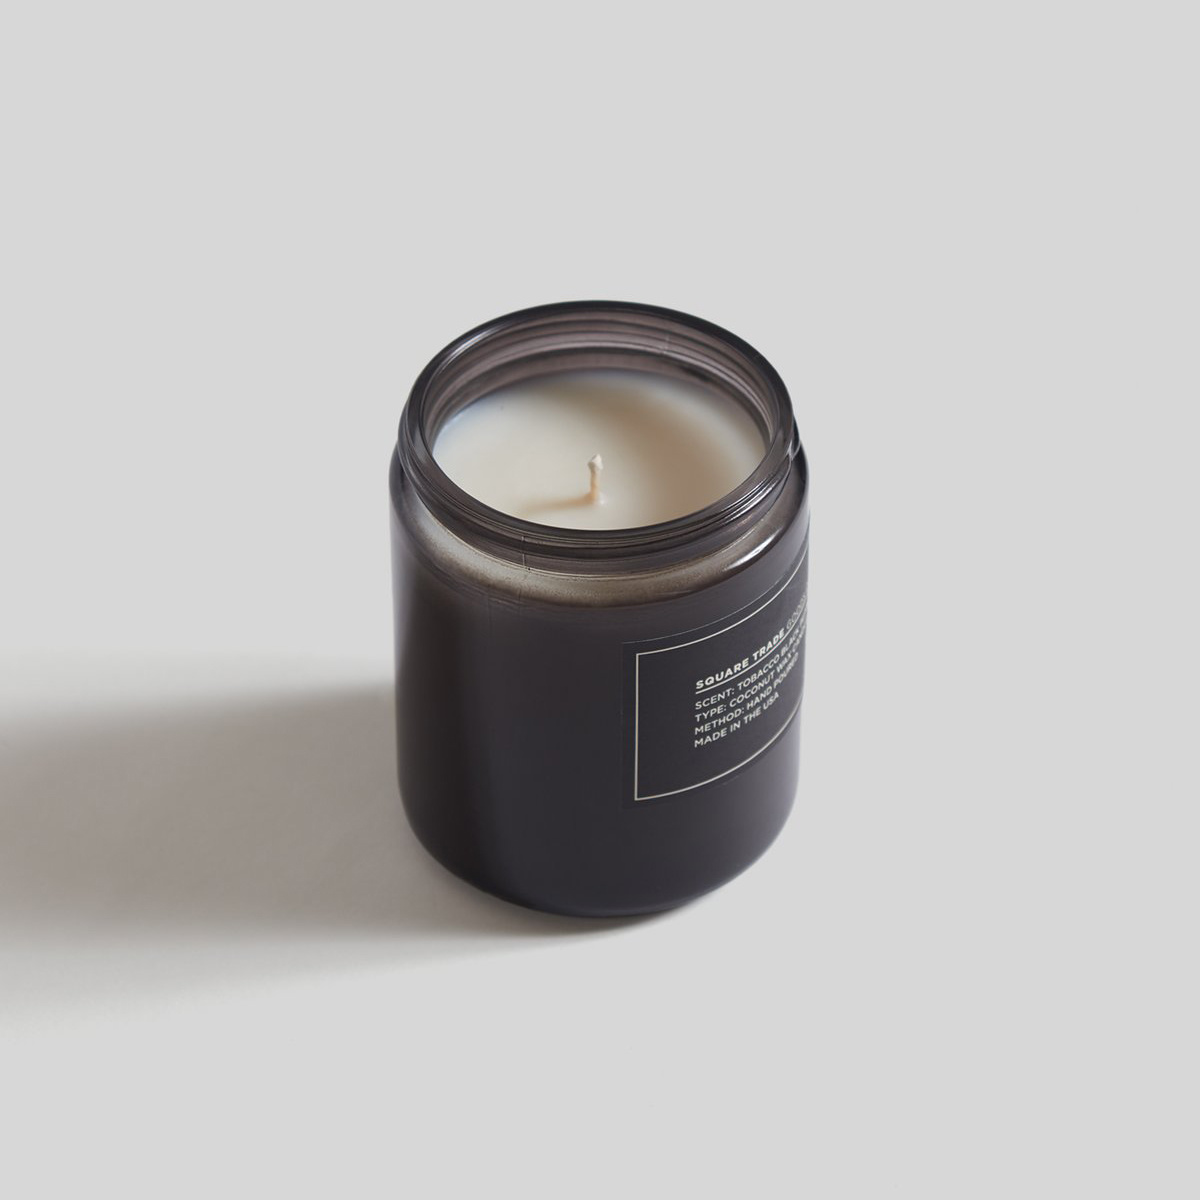 Square Trade Goods Co. Tobacco Black Pepper Candle